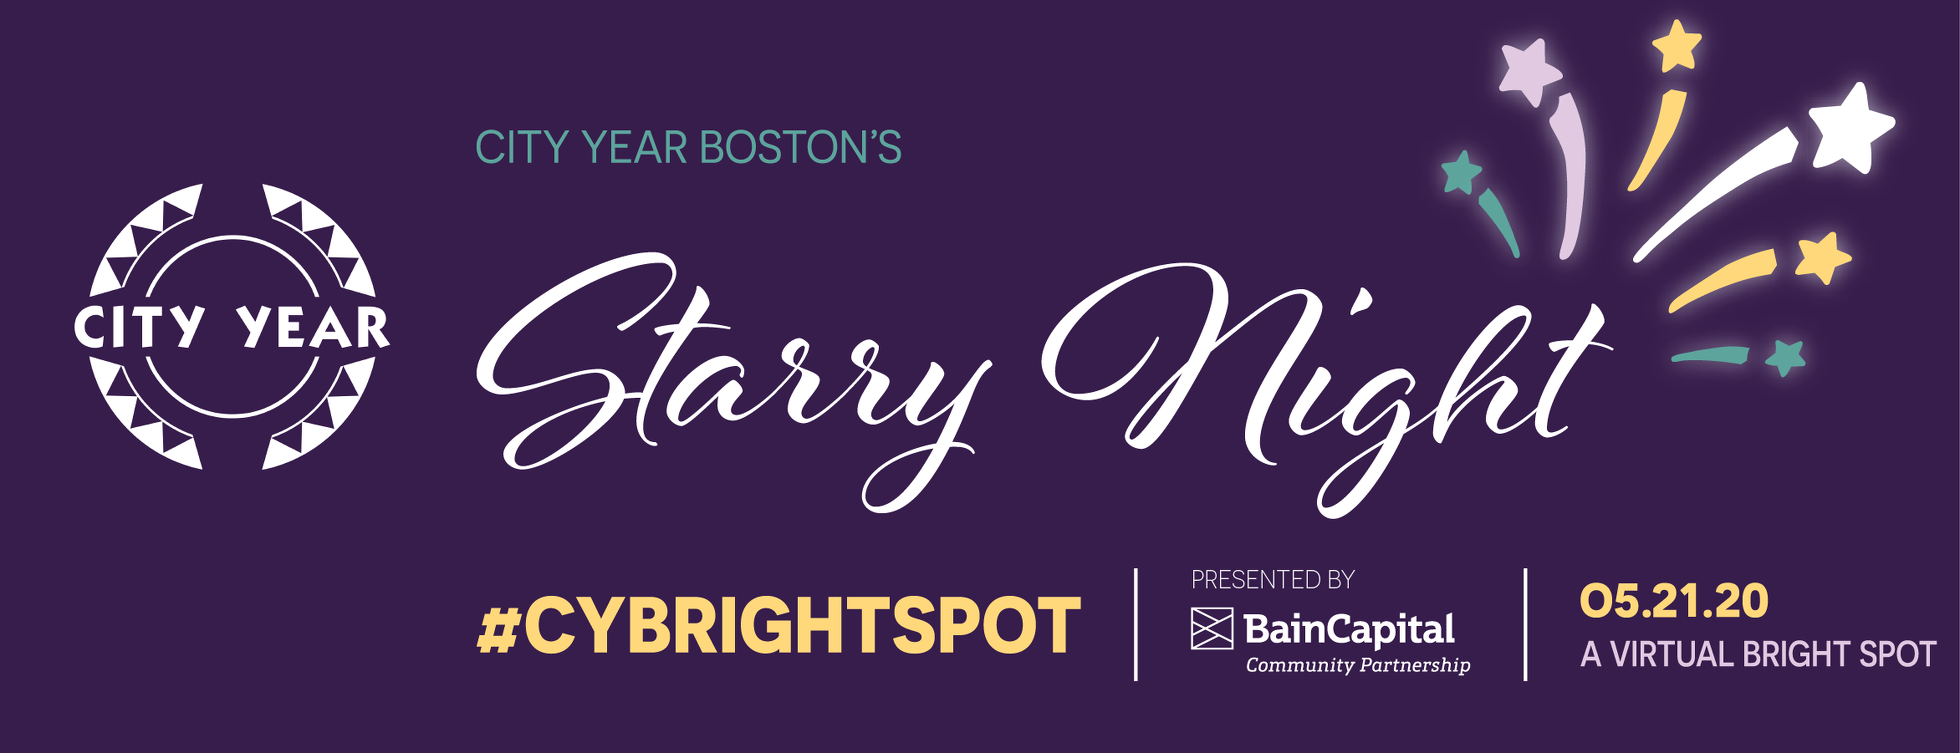 City Year Boston's Starry Night - A Virtual Bright Spot